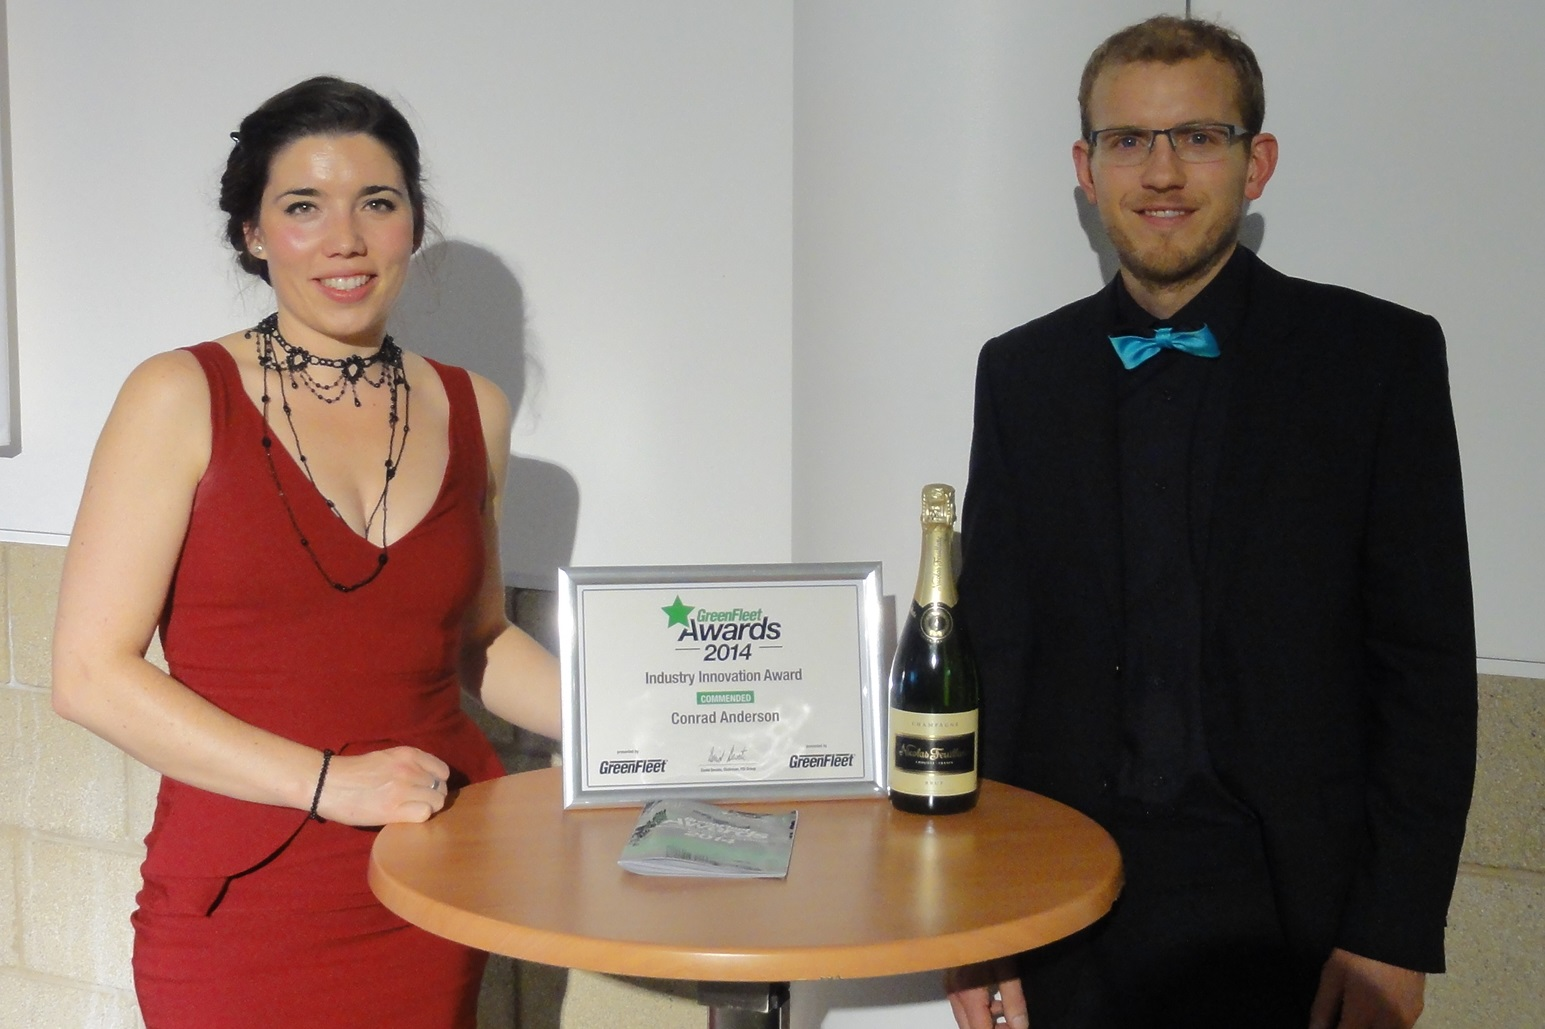 Naomi and Nathan Onions Green fleet industry innovation awards